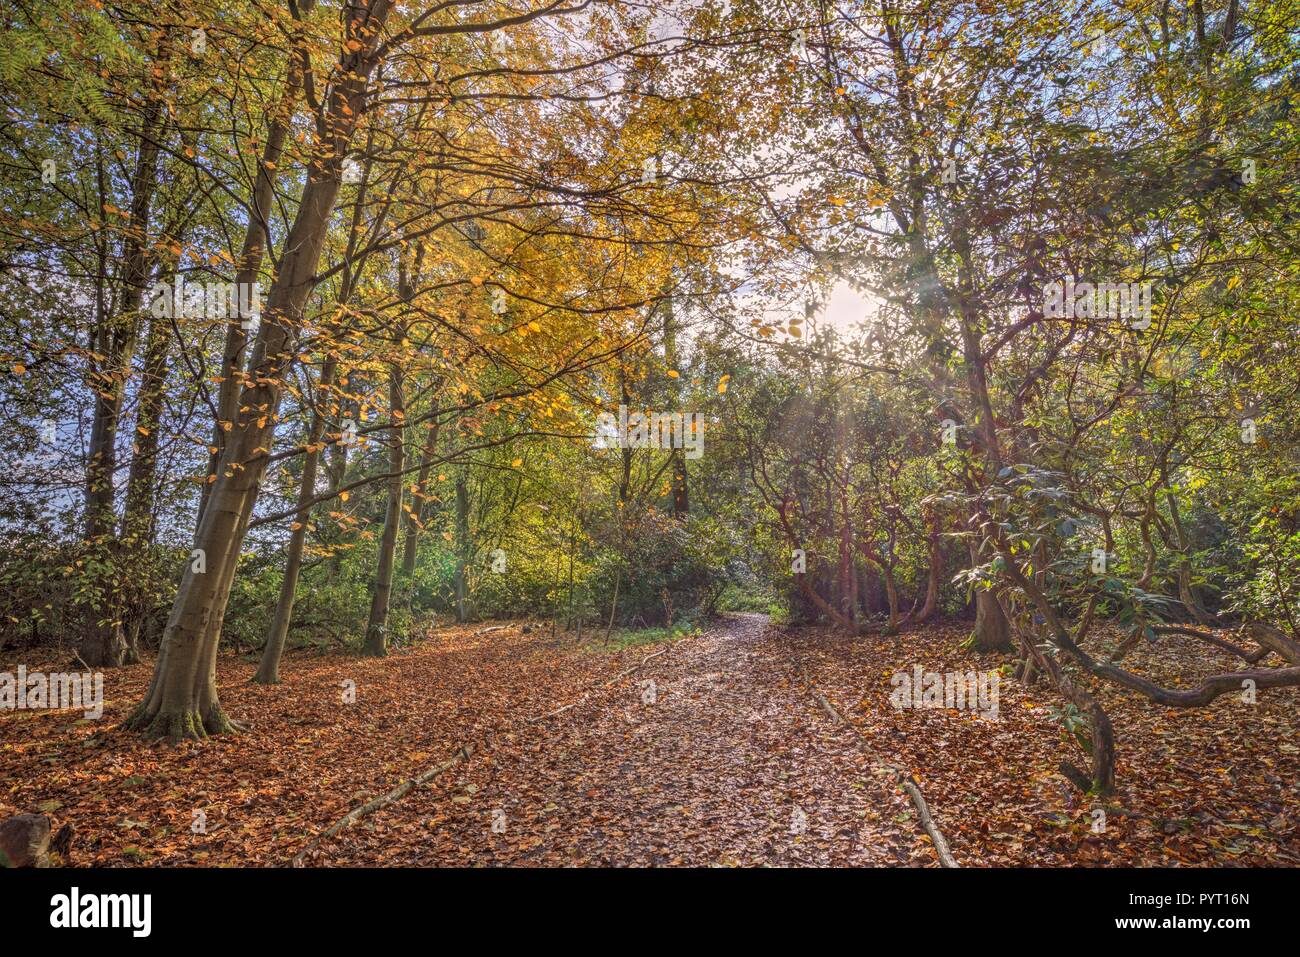 A path though the woods in autumn.  Orange and brown leaves carpet the ground and sunlight filters through the tree-tops. Stock Photo